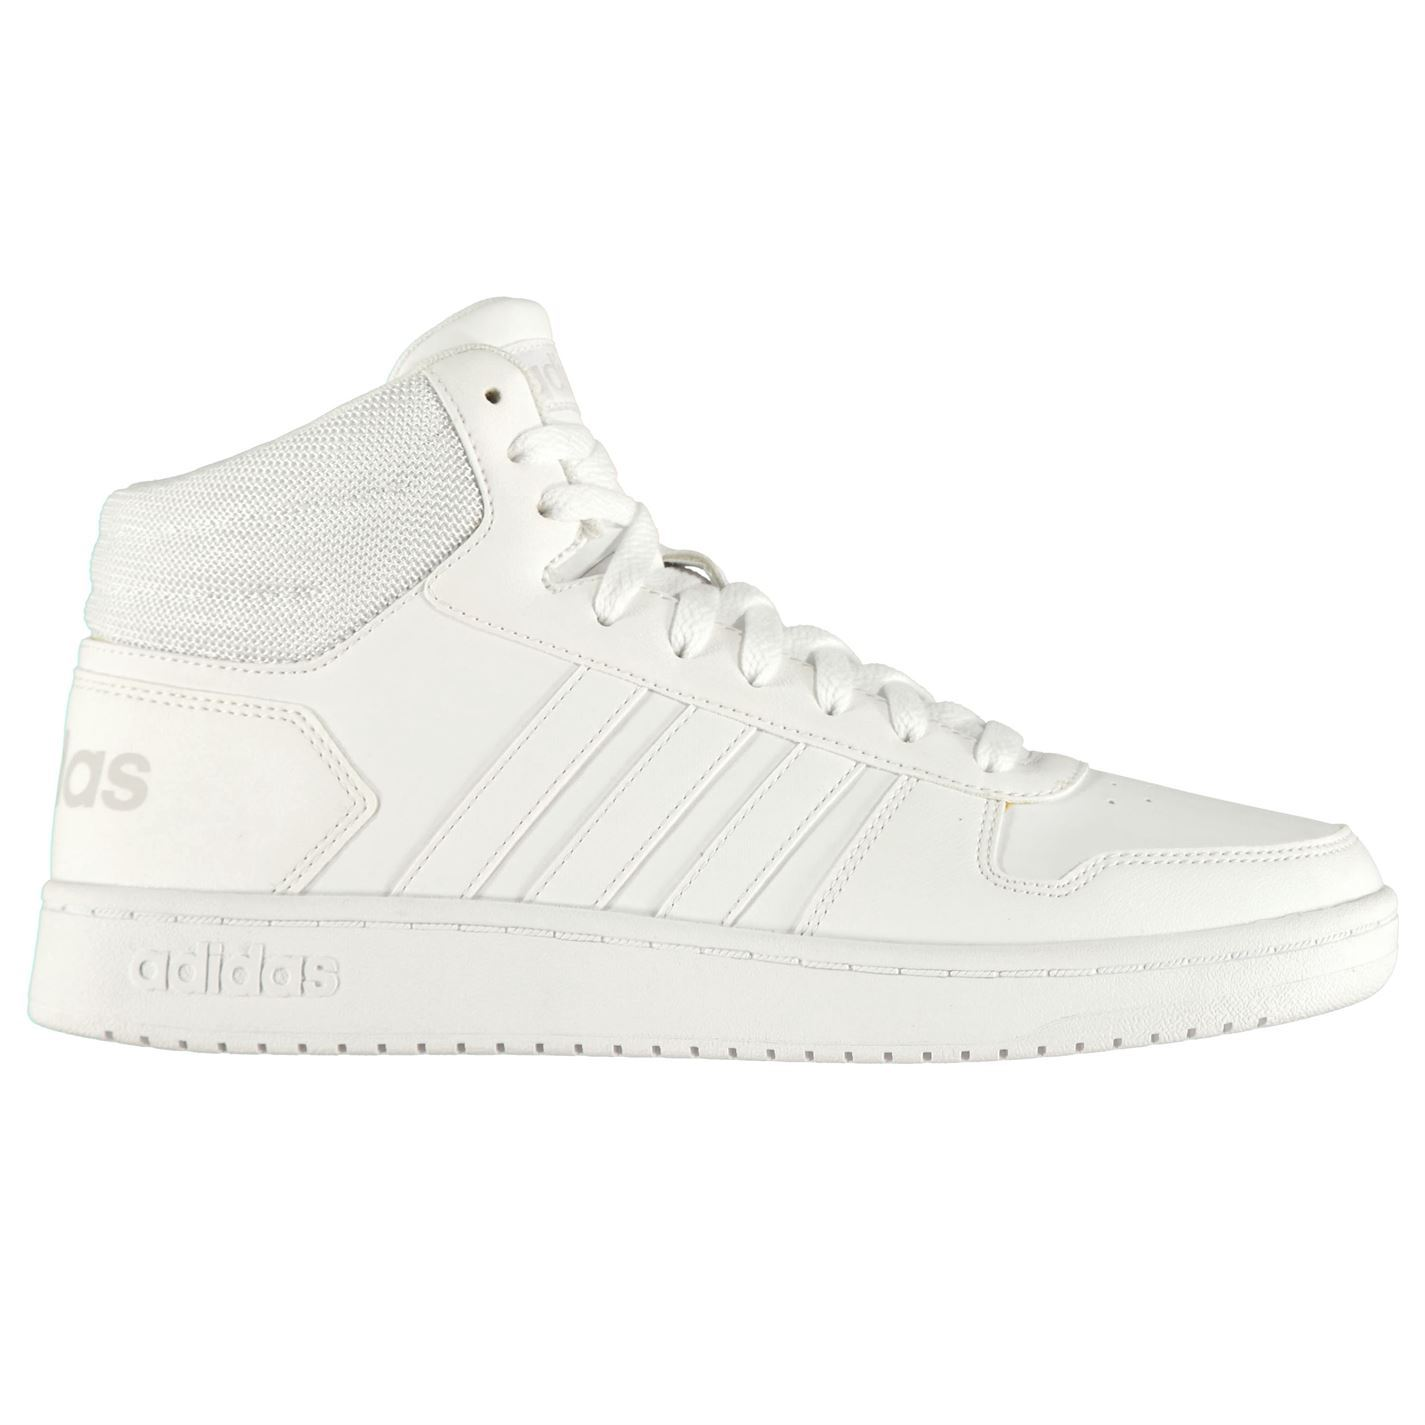 Adidas-Hoops-Mi-Montantes-Homme-athleisure-Chaussures-Baskets-Chaussures miniature 9